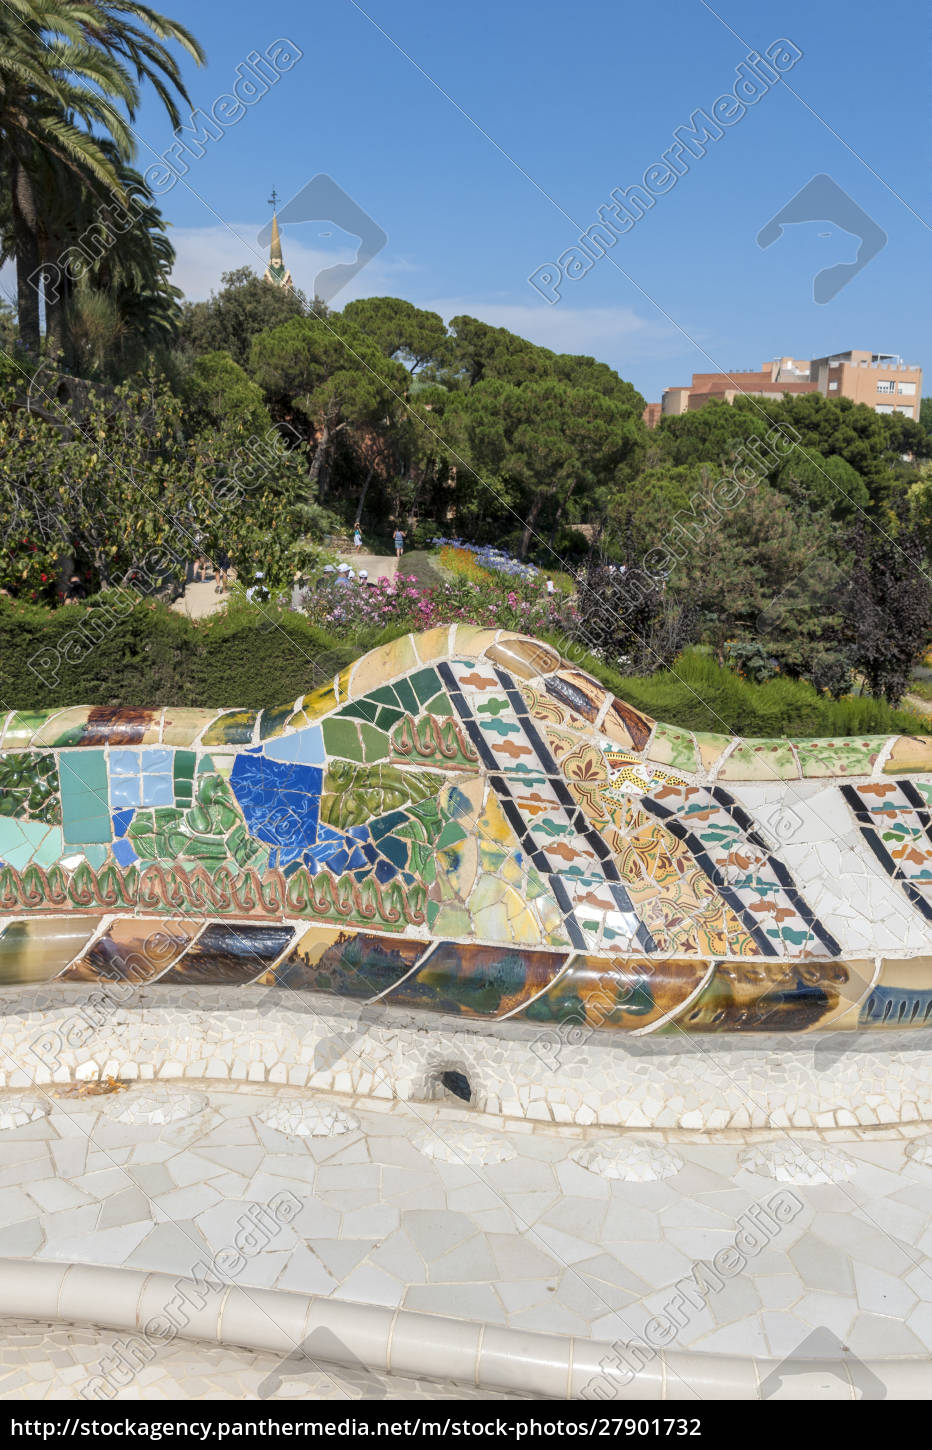 europe, , spain, , barcelona, , park, guell - 27901732